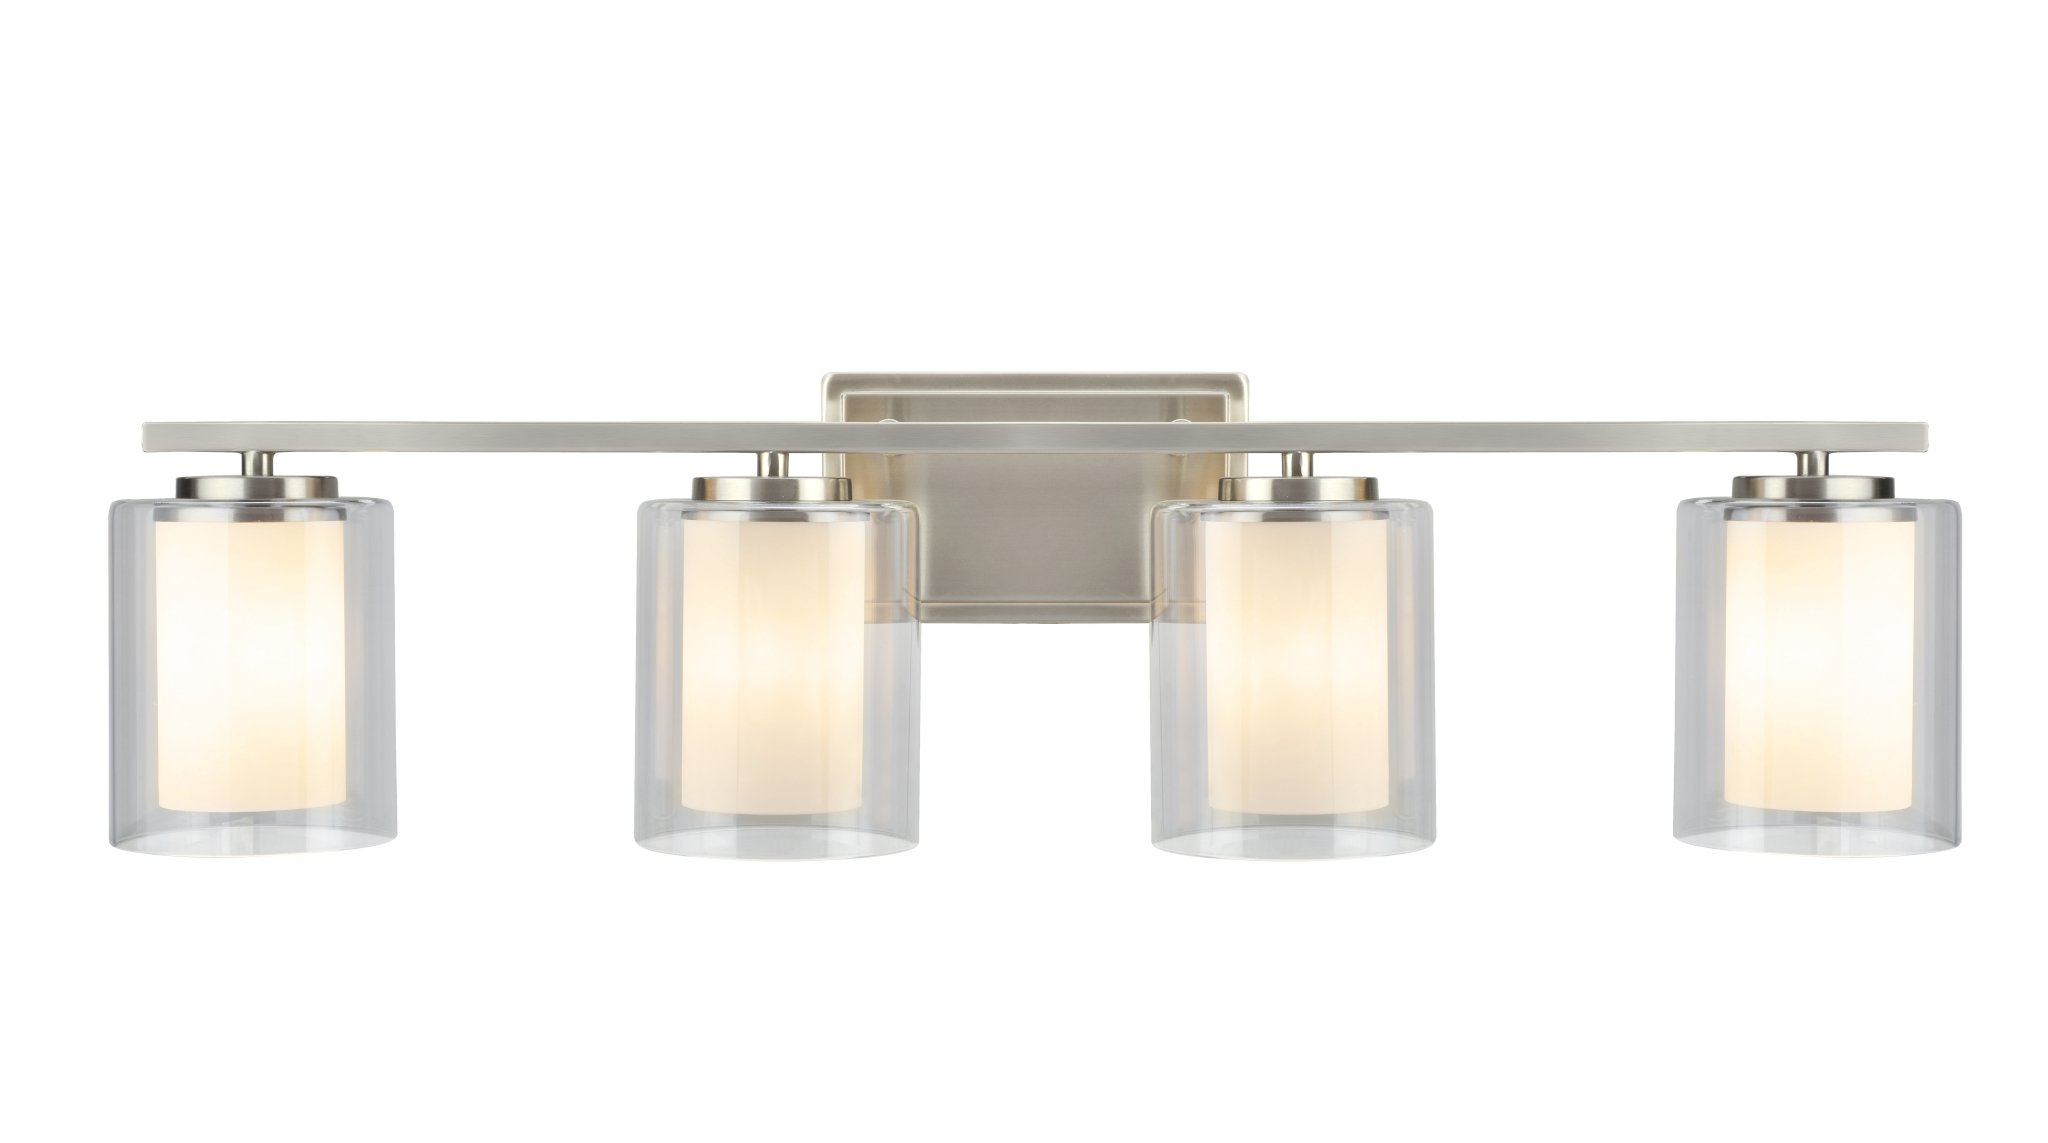 Aspen Creative 62104, Four-Light Metal Bathroom Vanity Wall Light Fixture, 32'' Wide, Transitional Design in Satin Nickel with Clear Glass Shade by Aspen Creative (Image #2)